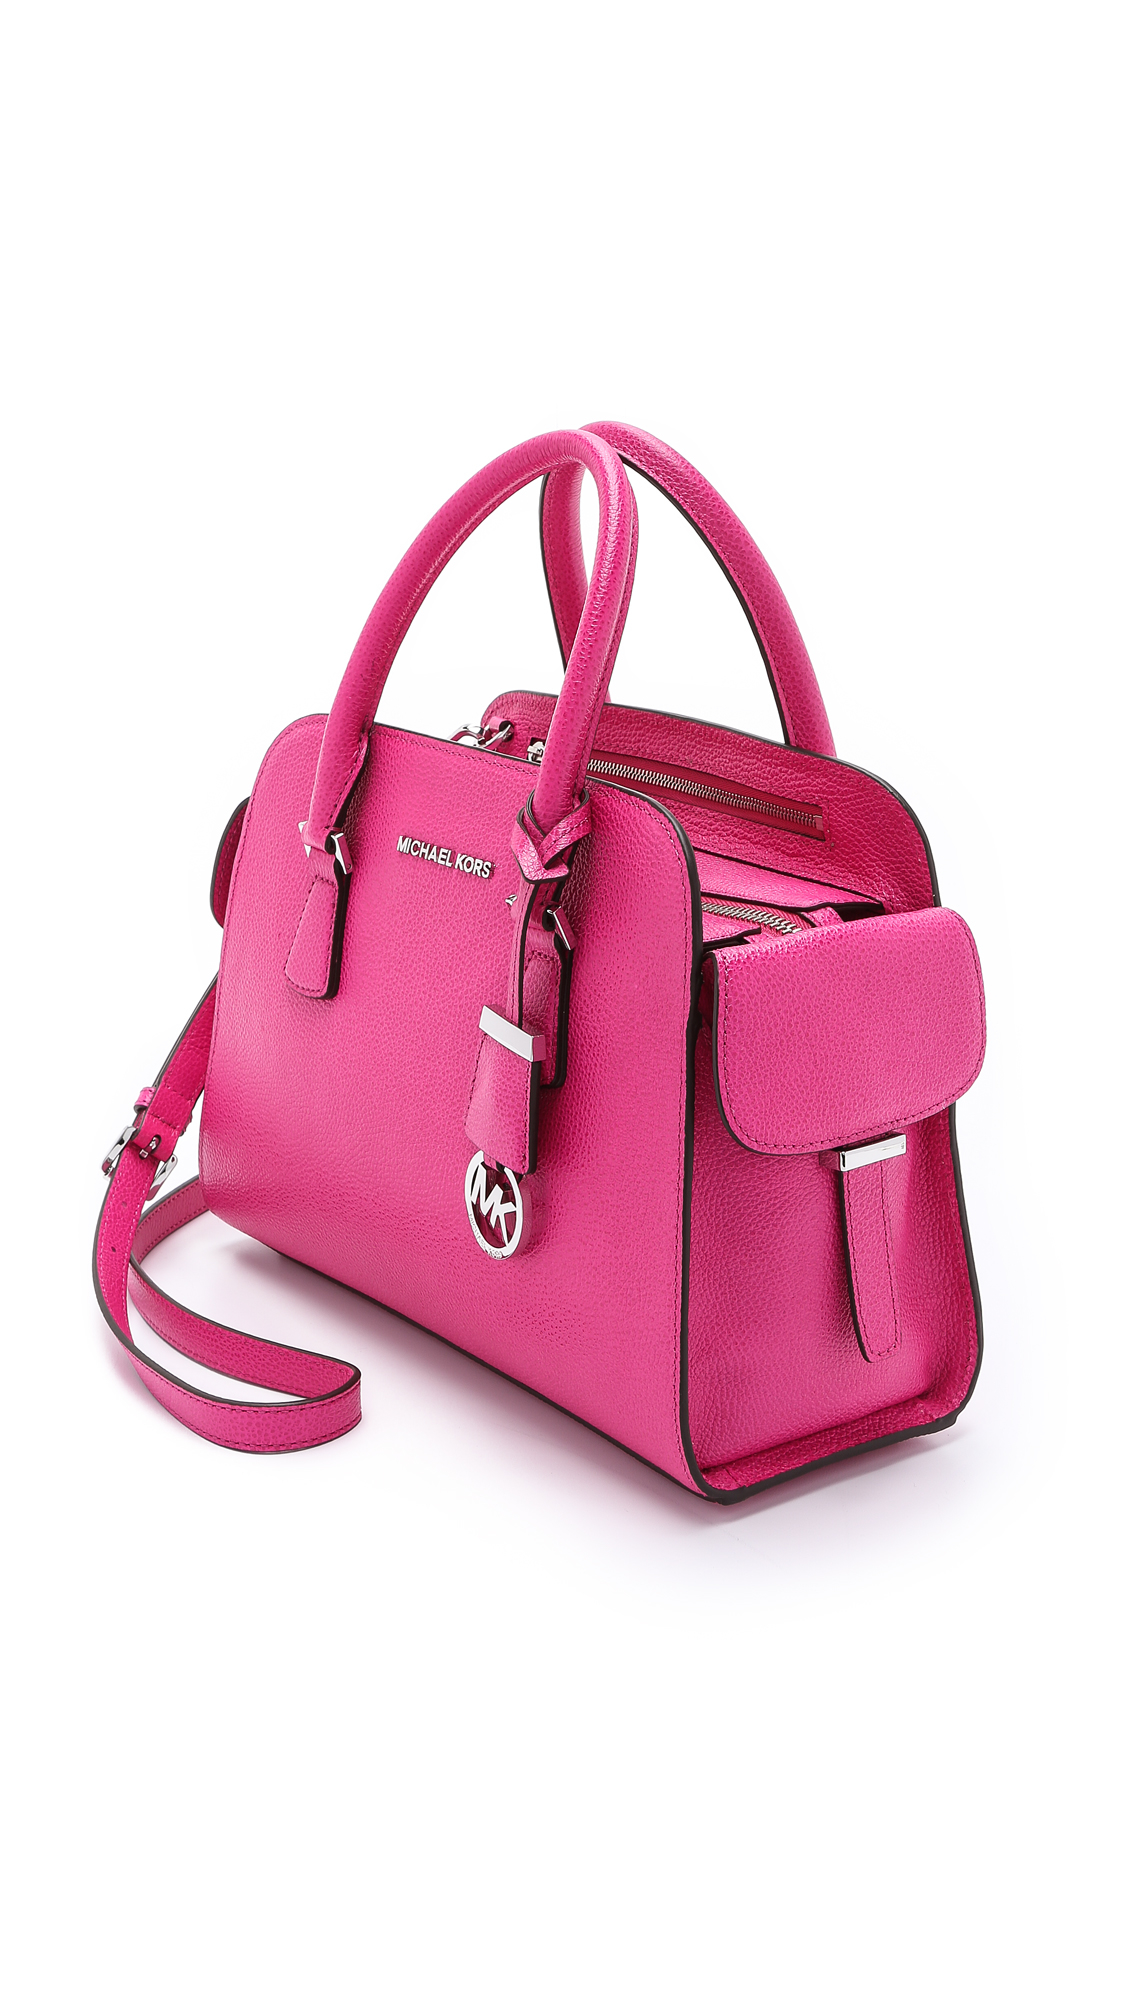 2c58d3084dd6 ... coupon code for lyst michael michael kors harper medium satchel  raspberry in pink b391d 20b02